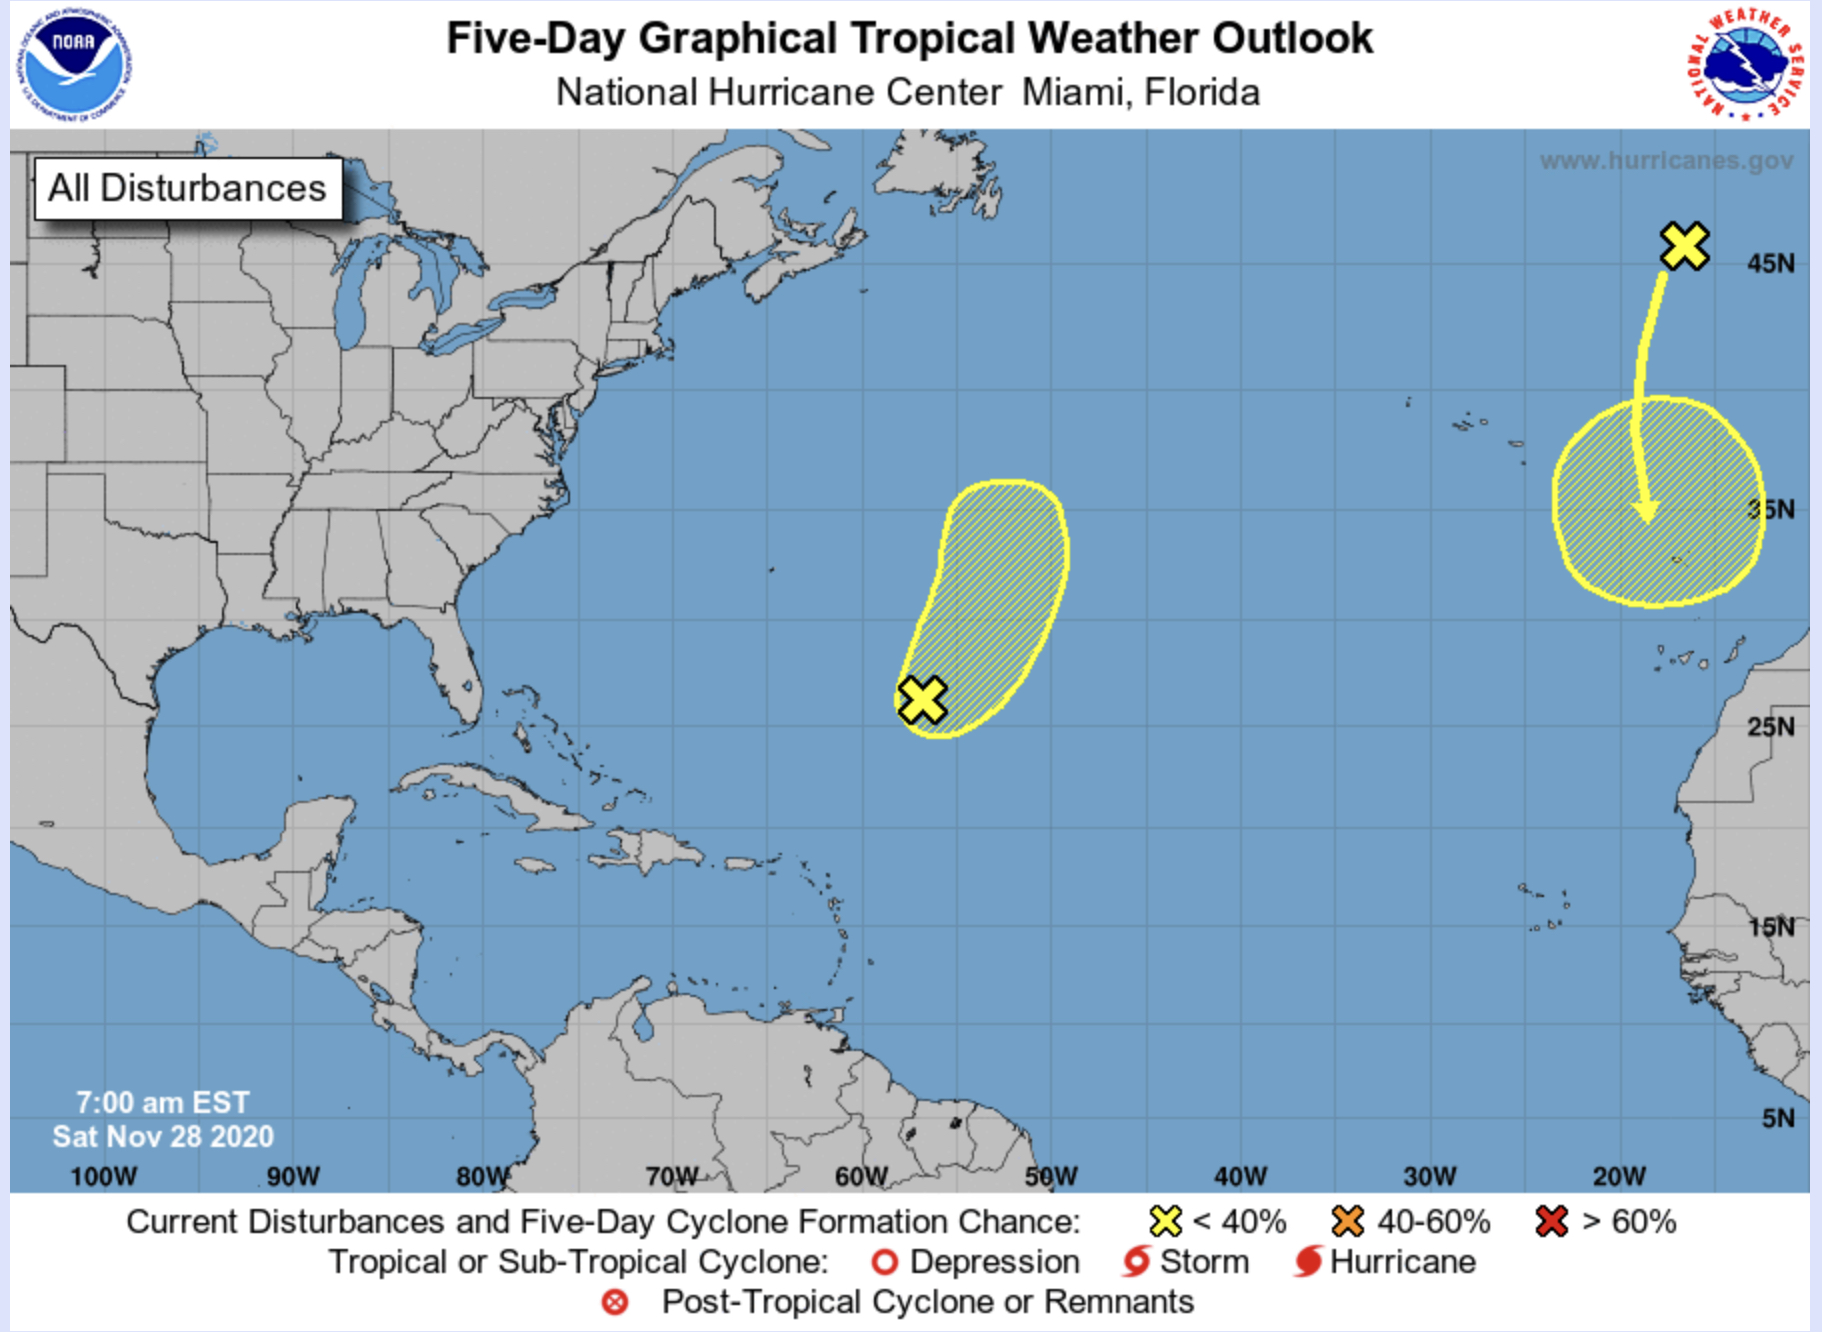 HURRICANE CENTER: Two Systems Appear To Be Moving Away From U.S. Mainland